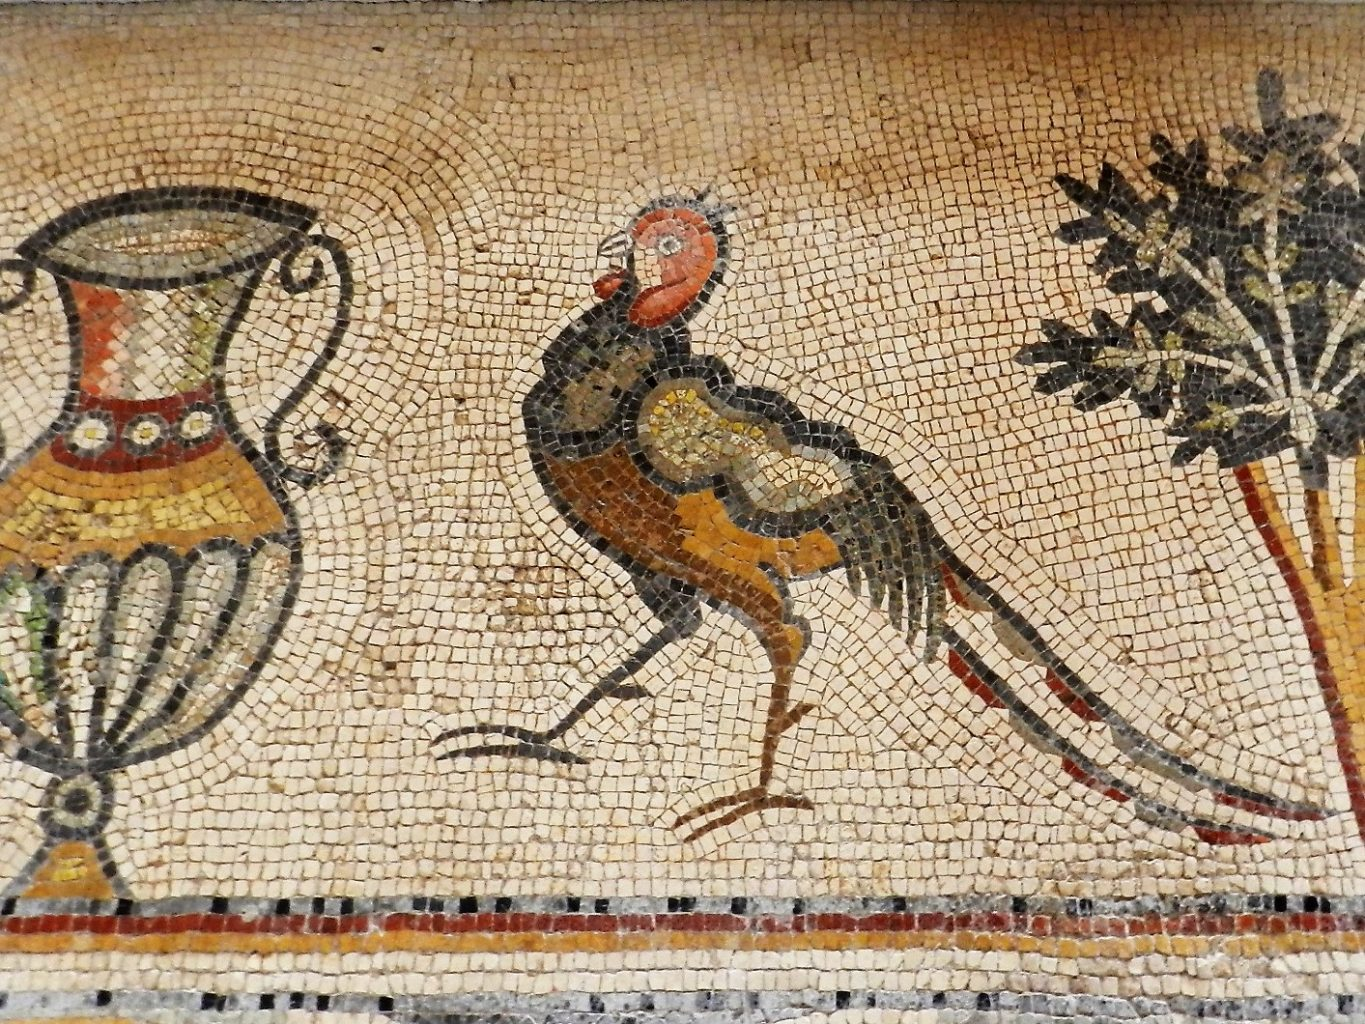 The Mosaics of Jordan: A photo gallery